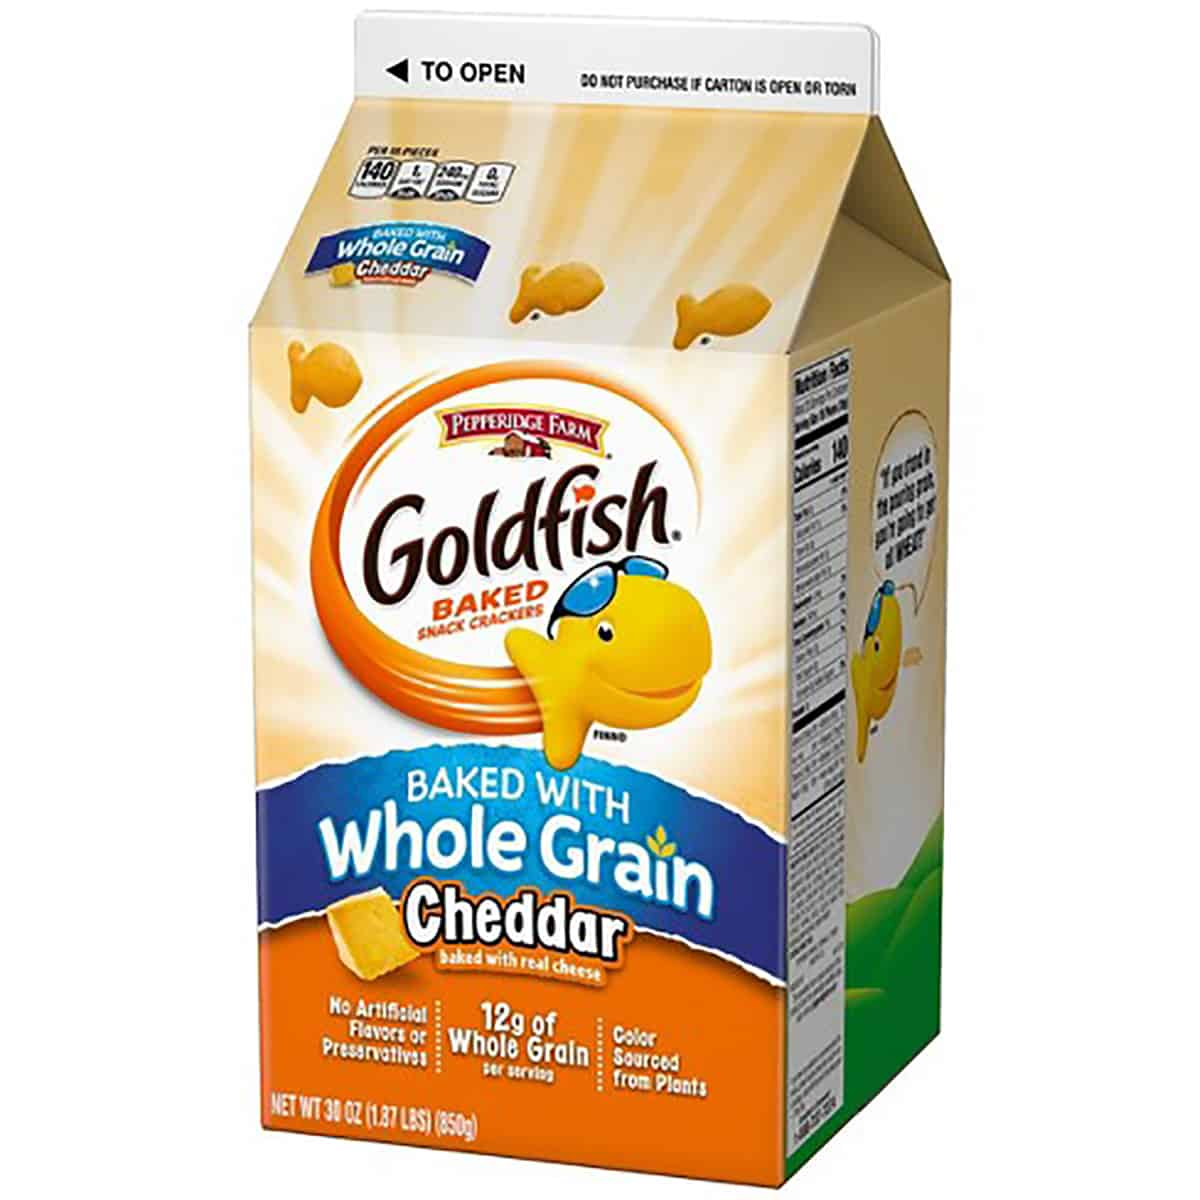 A package of whole grain goldfish crackers as an example of a healthy packaged snack.